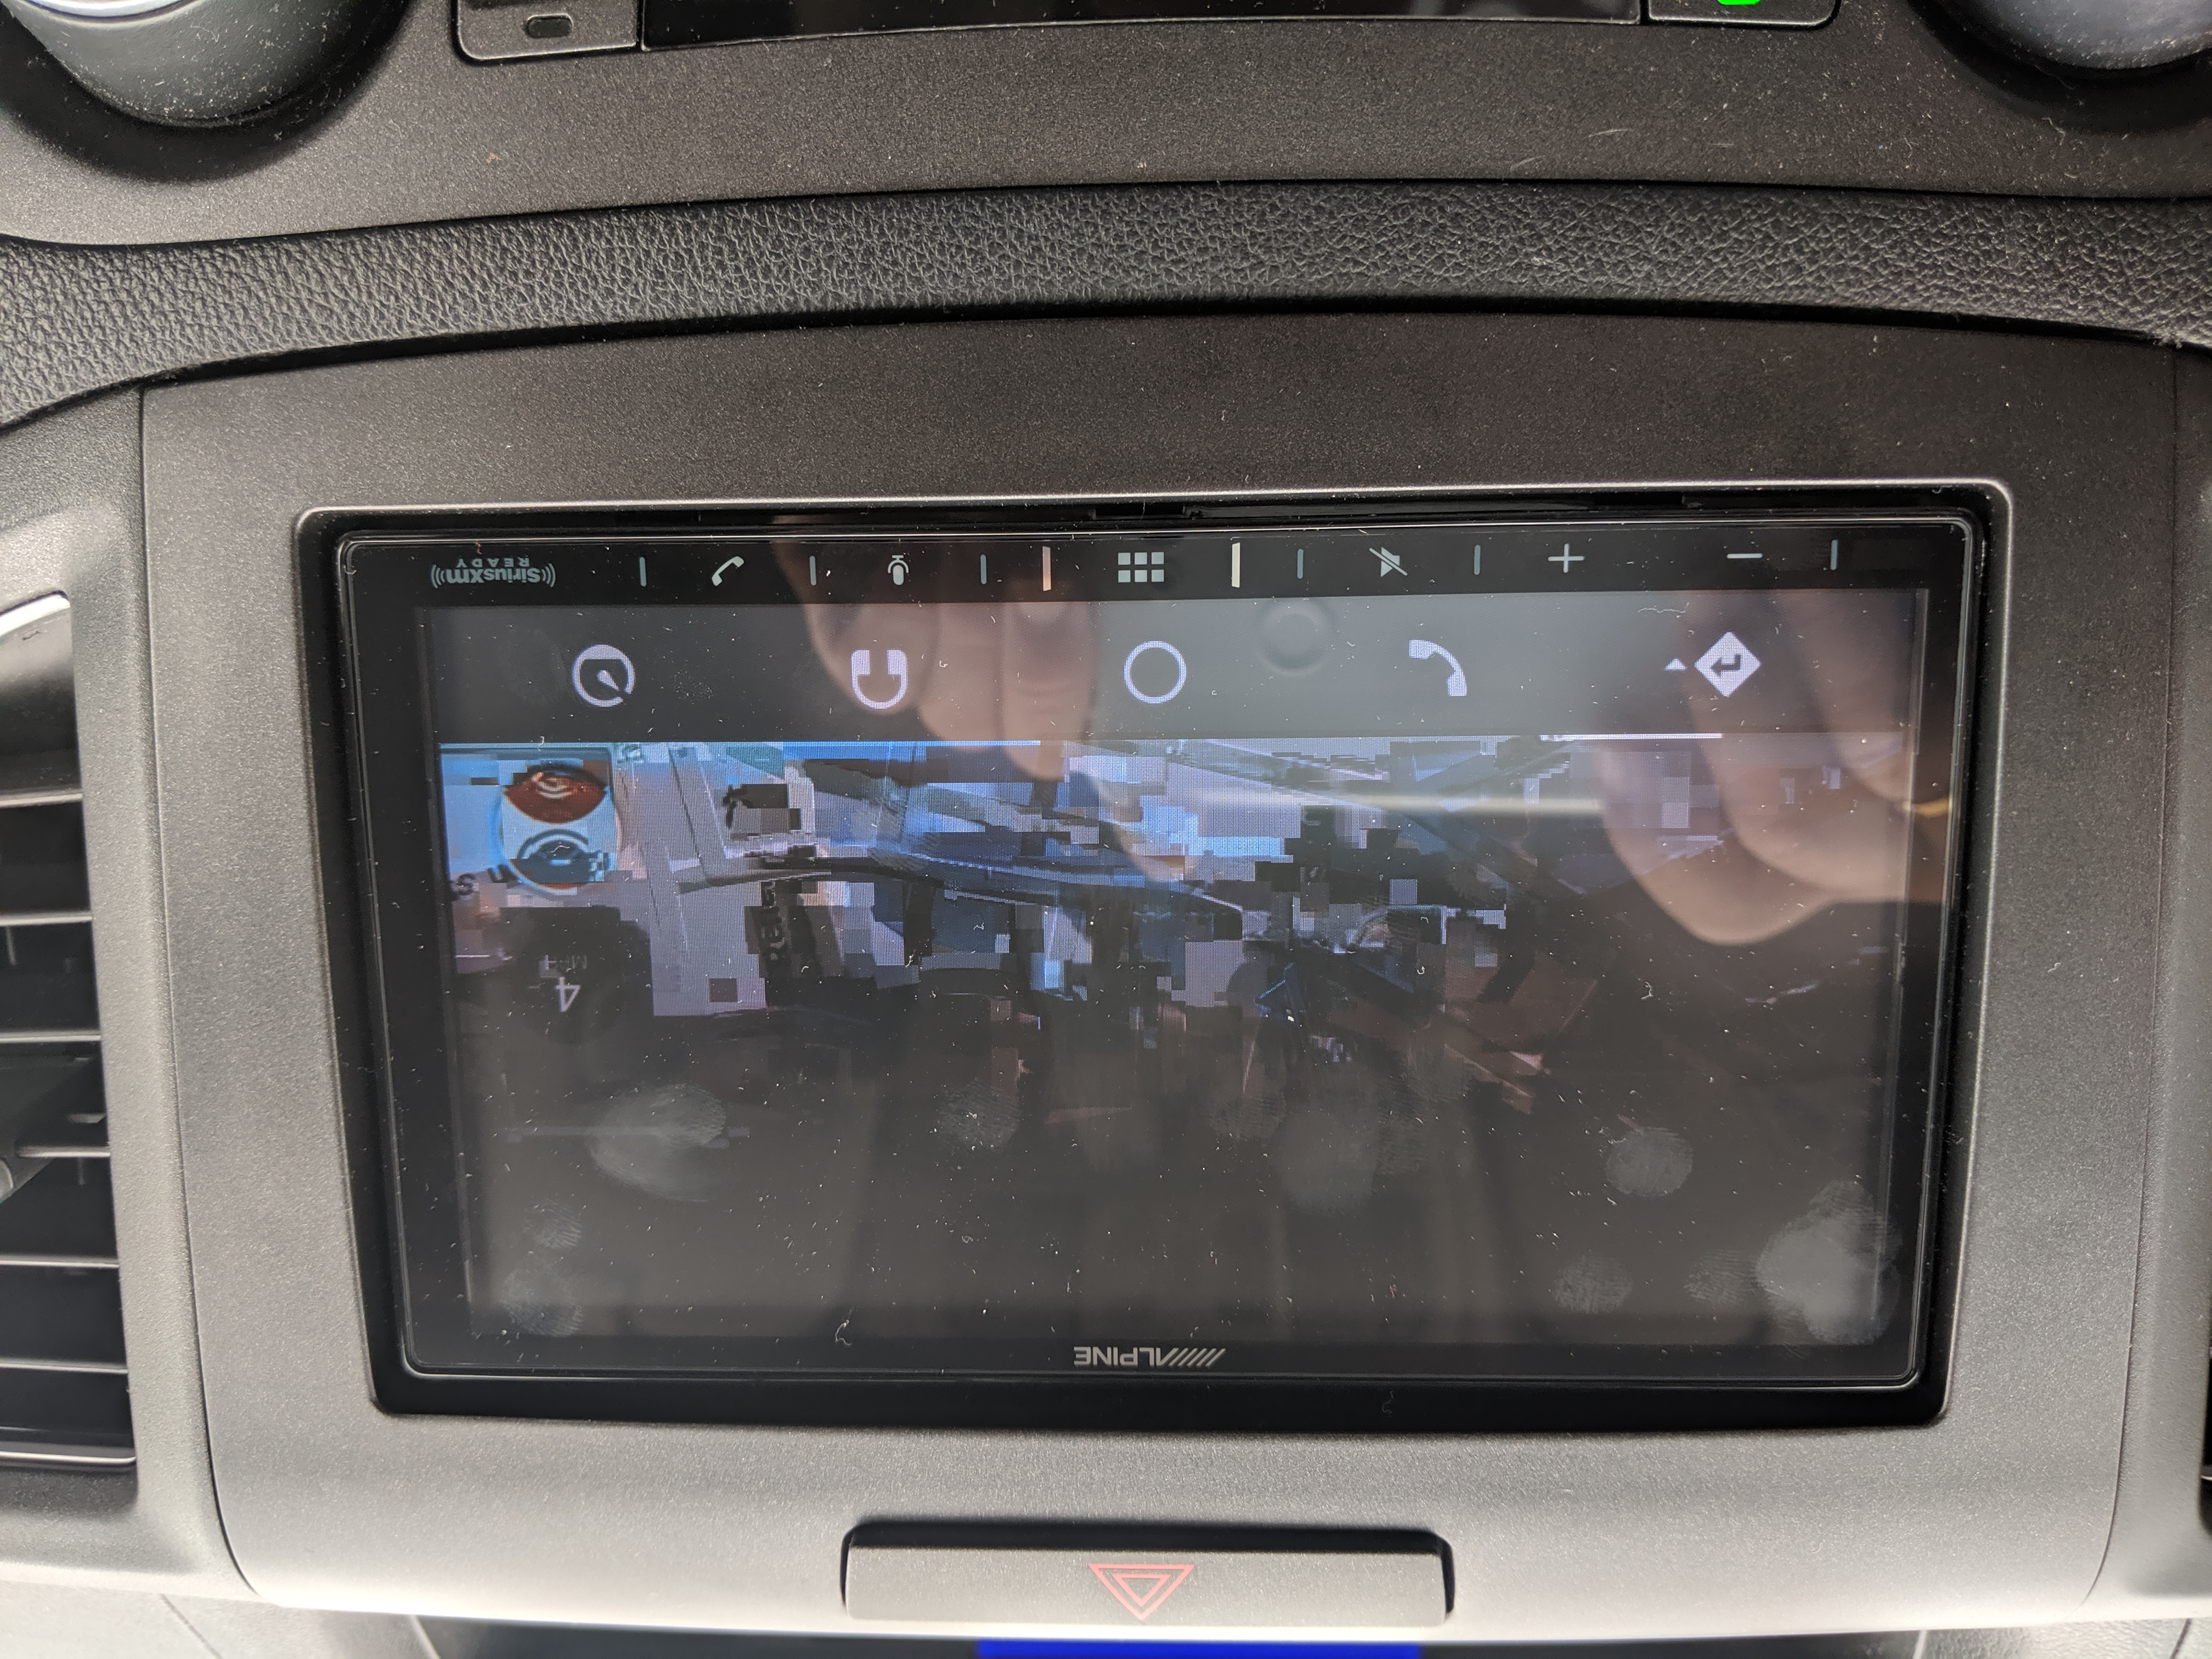 Picture issue when switching between apps - Android Auto Help